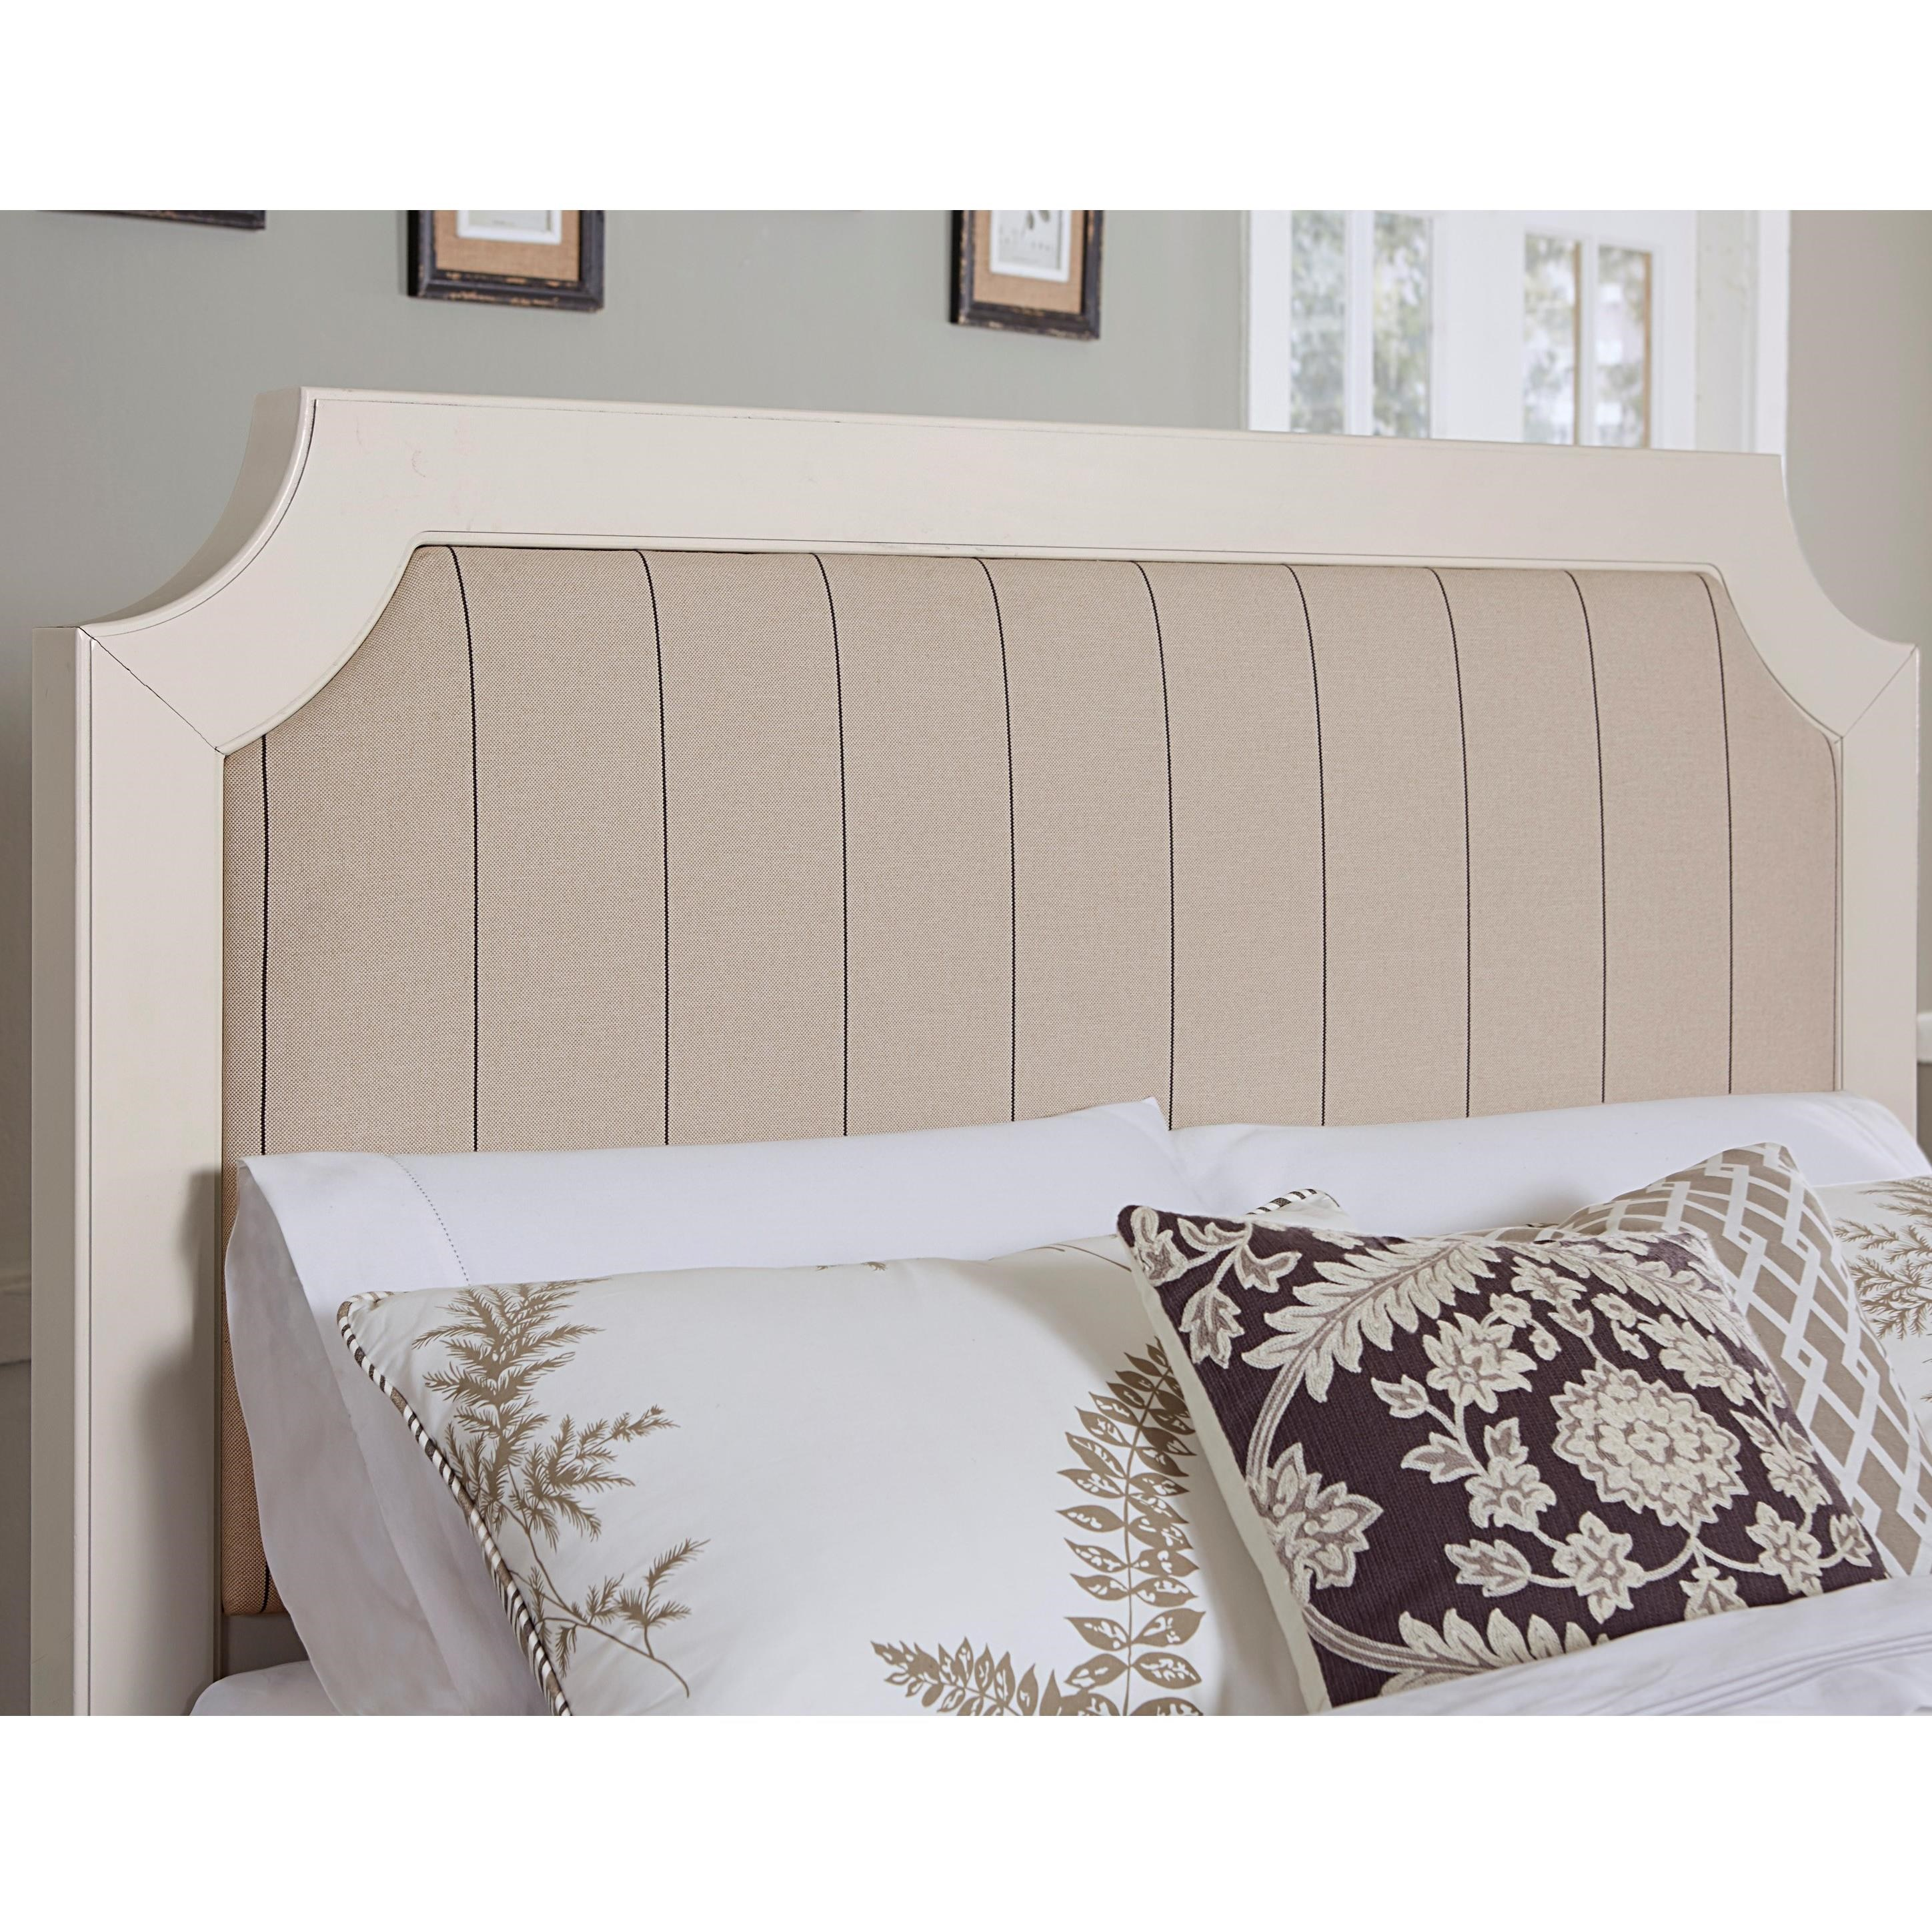 Bungalow Twin Upholstered Headboard by Vaughan-Bassett at Crowley Furniture & Mattress